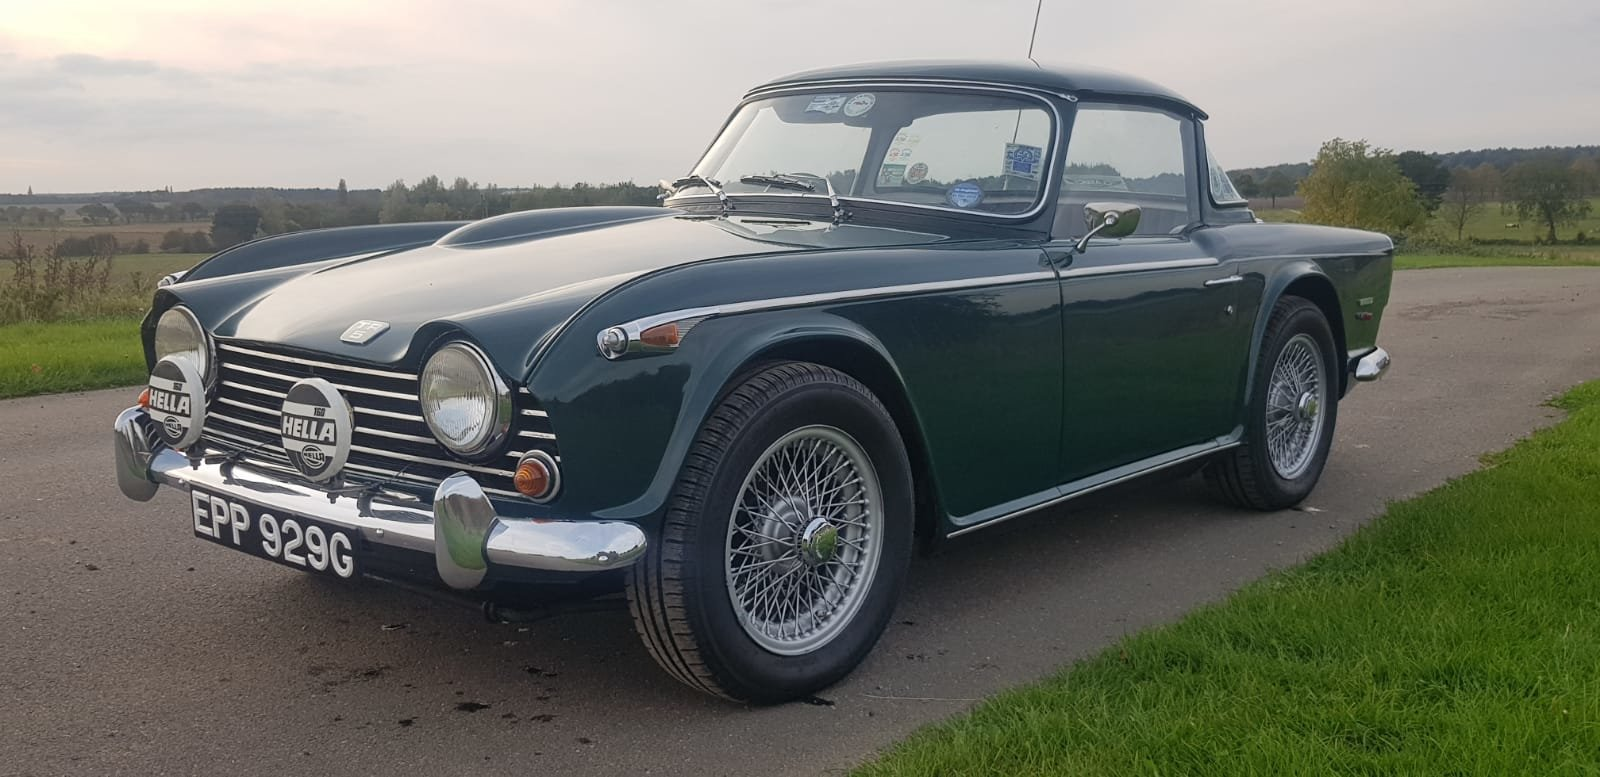 1968/G TRIUMPH TR5 PI WITH SURREY TOP MANUAL O/D GREEN For Sale (picture 2 of 6)